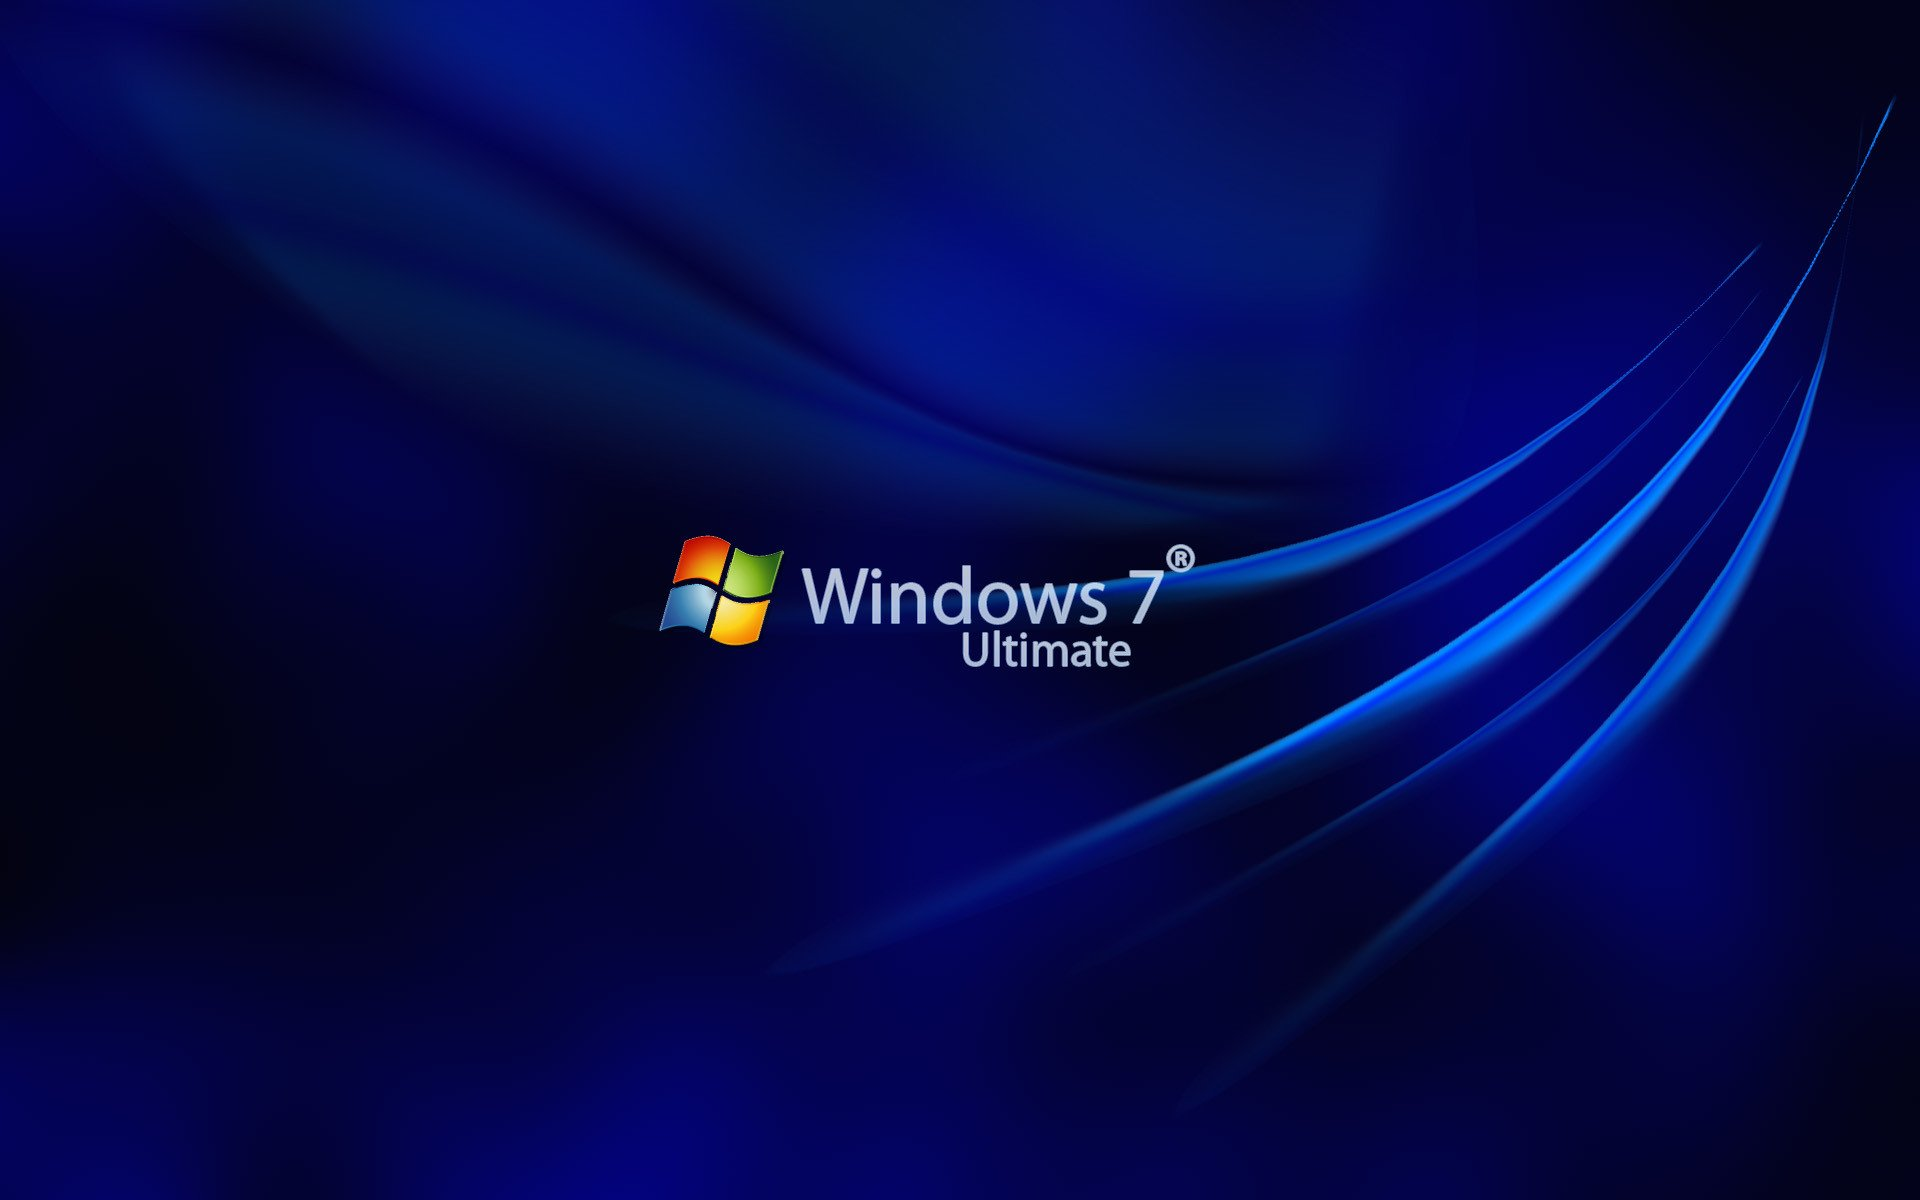 Free Download Windows 7 Ultimate Wallpaper Hd 50 Images 1920x1200